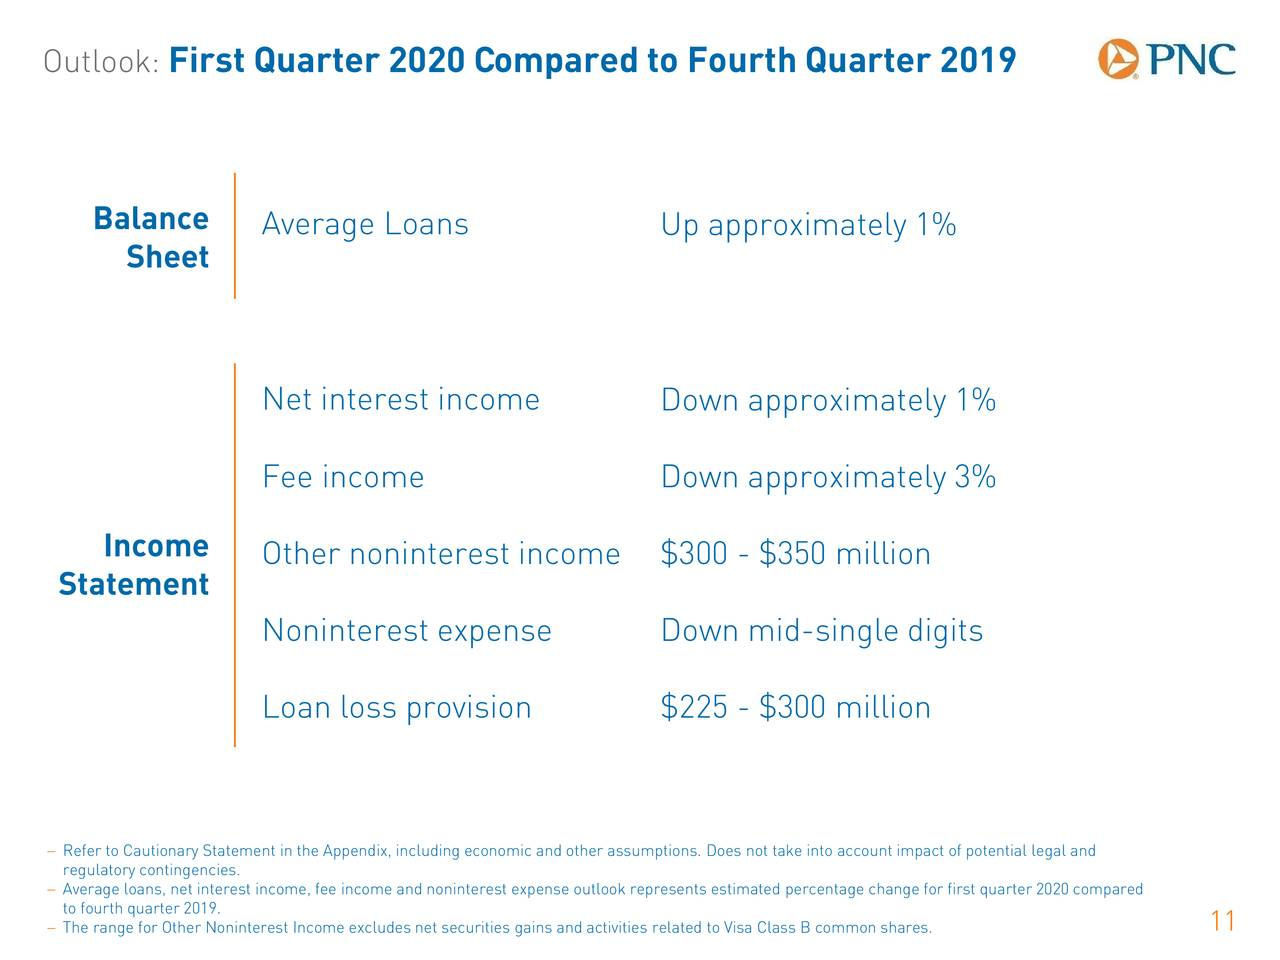 pnc investment outlook